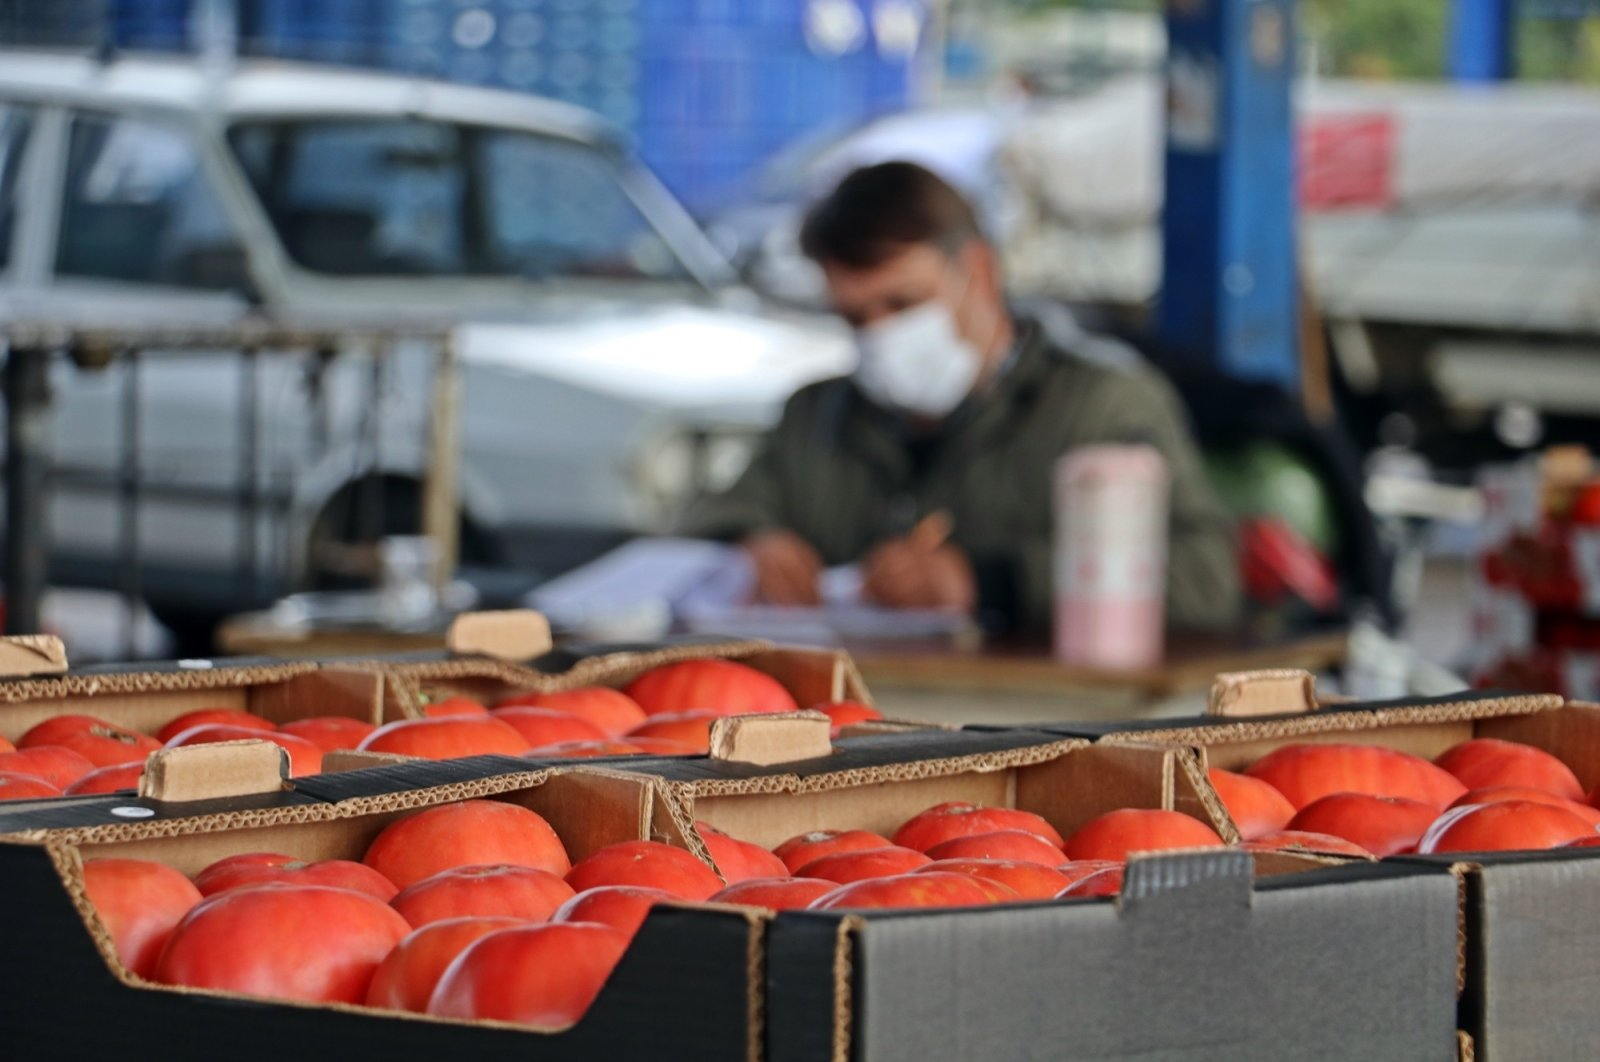 Russia received 61,781 tons of Turkish tomatoes worth $56 million in the first 11 months of 2020, making it the top market. (IHA Photo)